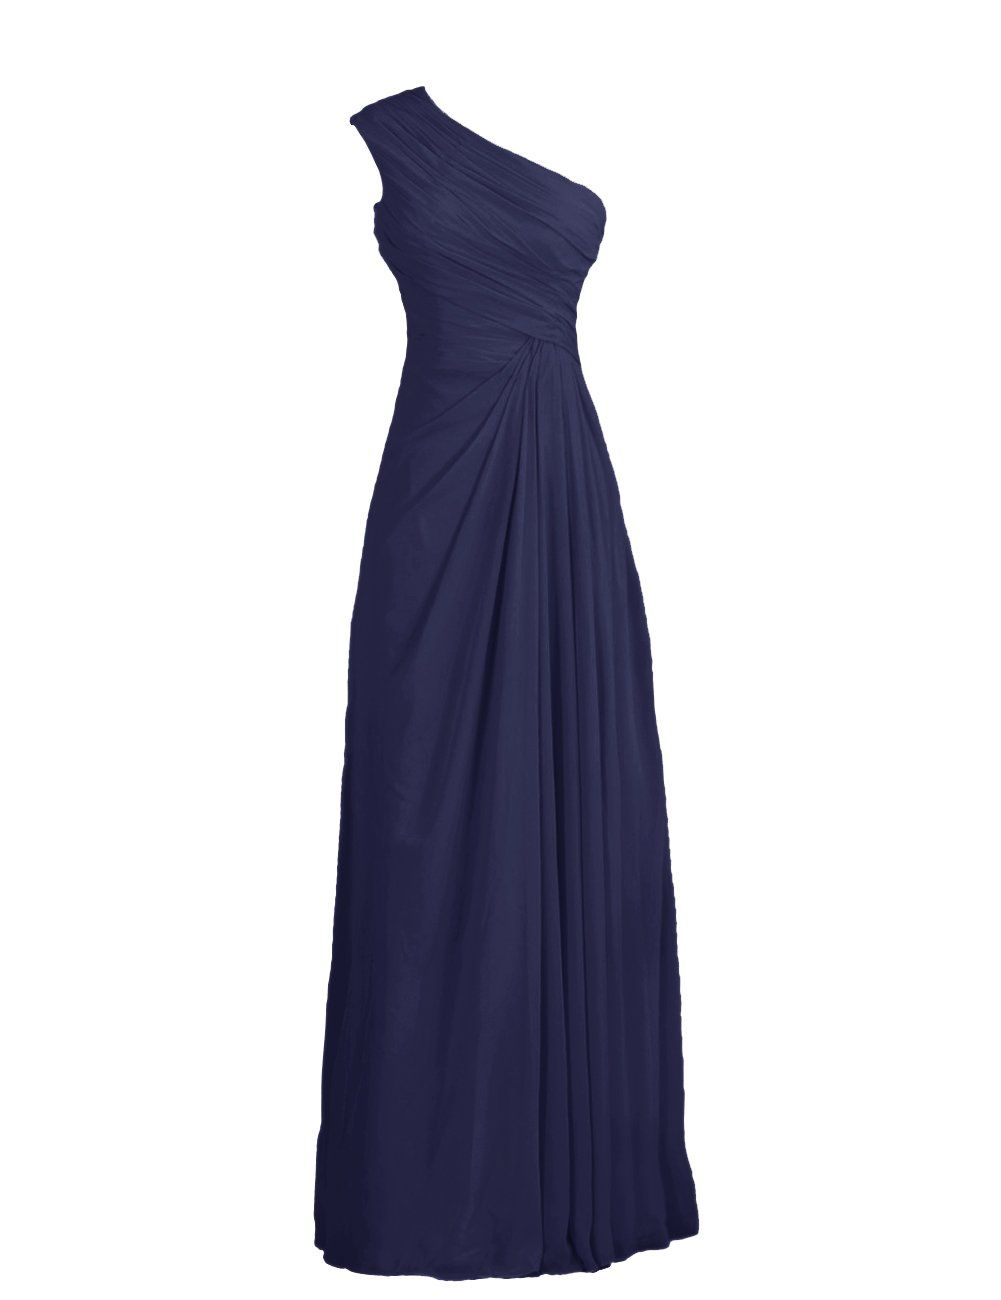 Tidetell Simple One Shoulder Long Party Evening Chiffon Bridesmaid Dresses Navy Size 14